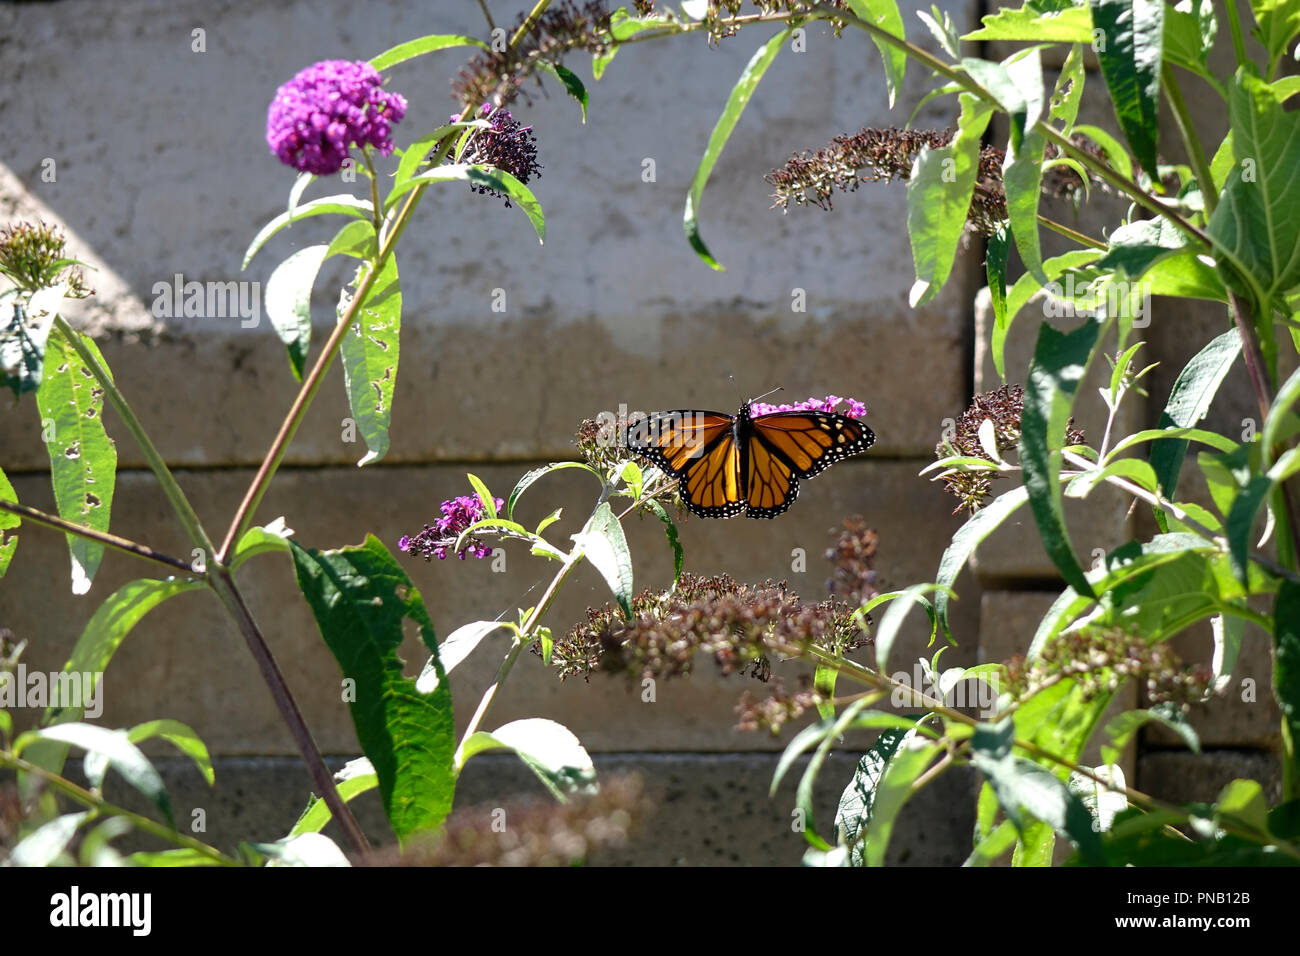 The Monarch is the most familiar North American butterfly, and is considered an iconic pollinator species. Its wings feature an easily recognizable bl - Stock Image